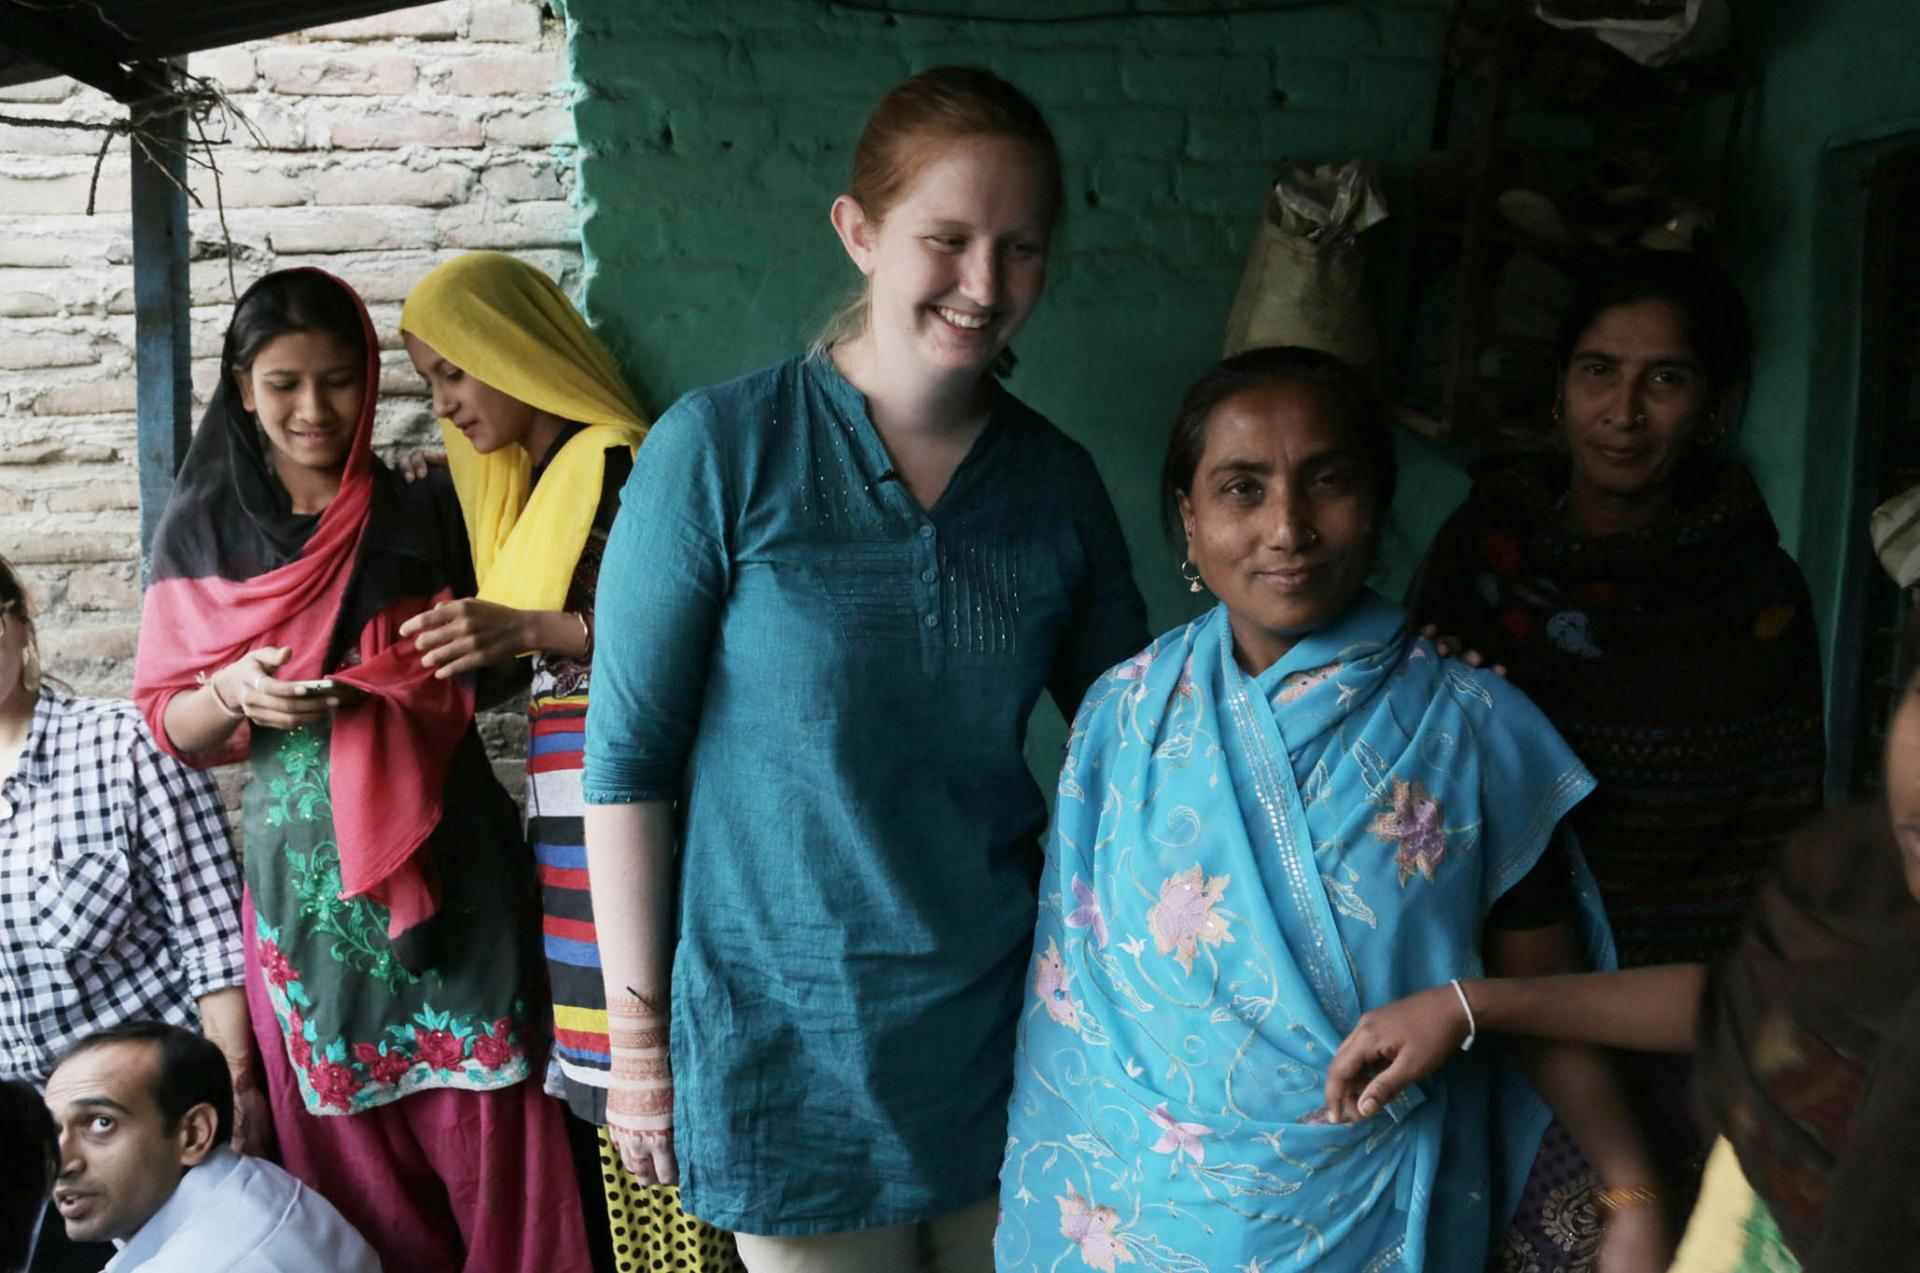 As overpopulation and lack of rainfall fuel a crisis-level need in rural India for affordable drinking water, PhD candidate Natasha Wright and Assistant Professor Amos Winter work to design a low-cost desalination system.